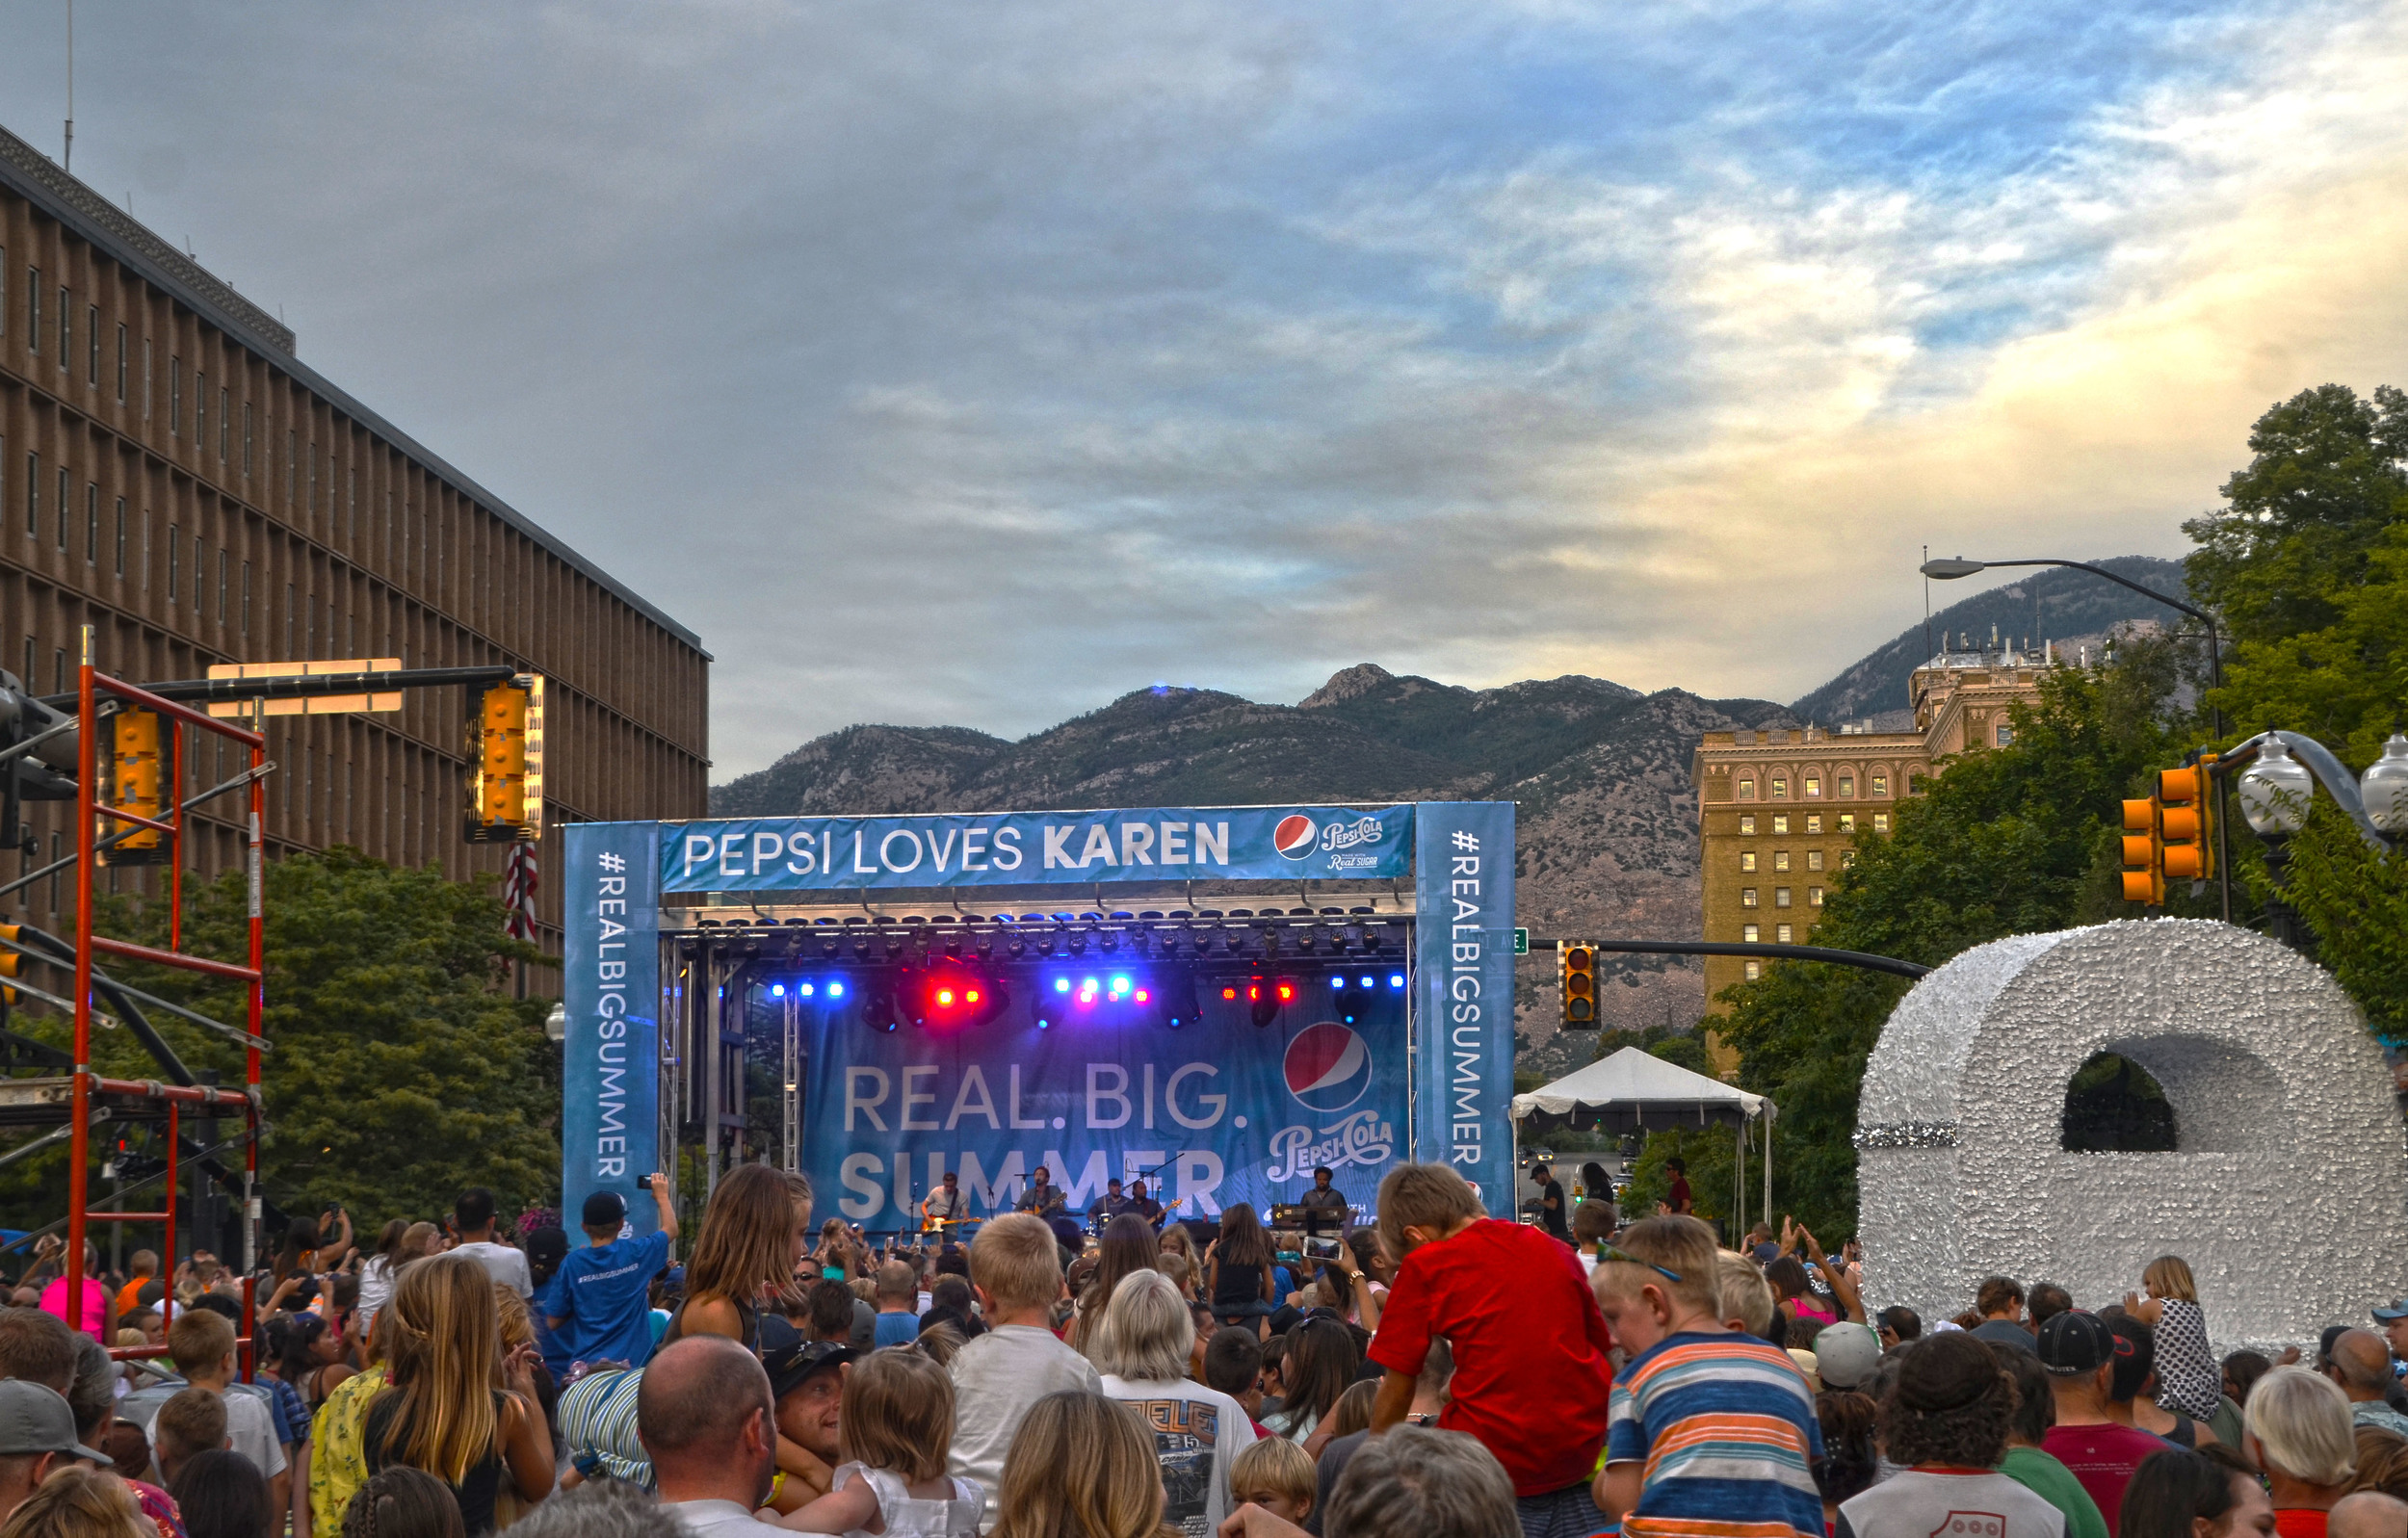 Thank you to Pepsi and their Real. Big. Summer. event for bringing a new kind of adventure to Ogden!